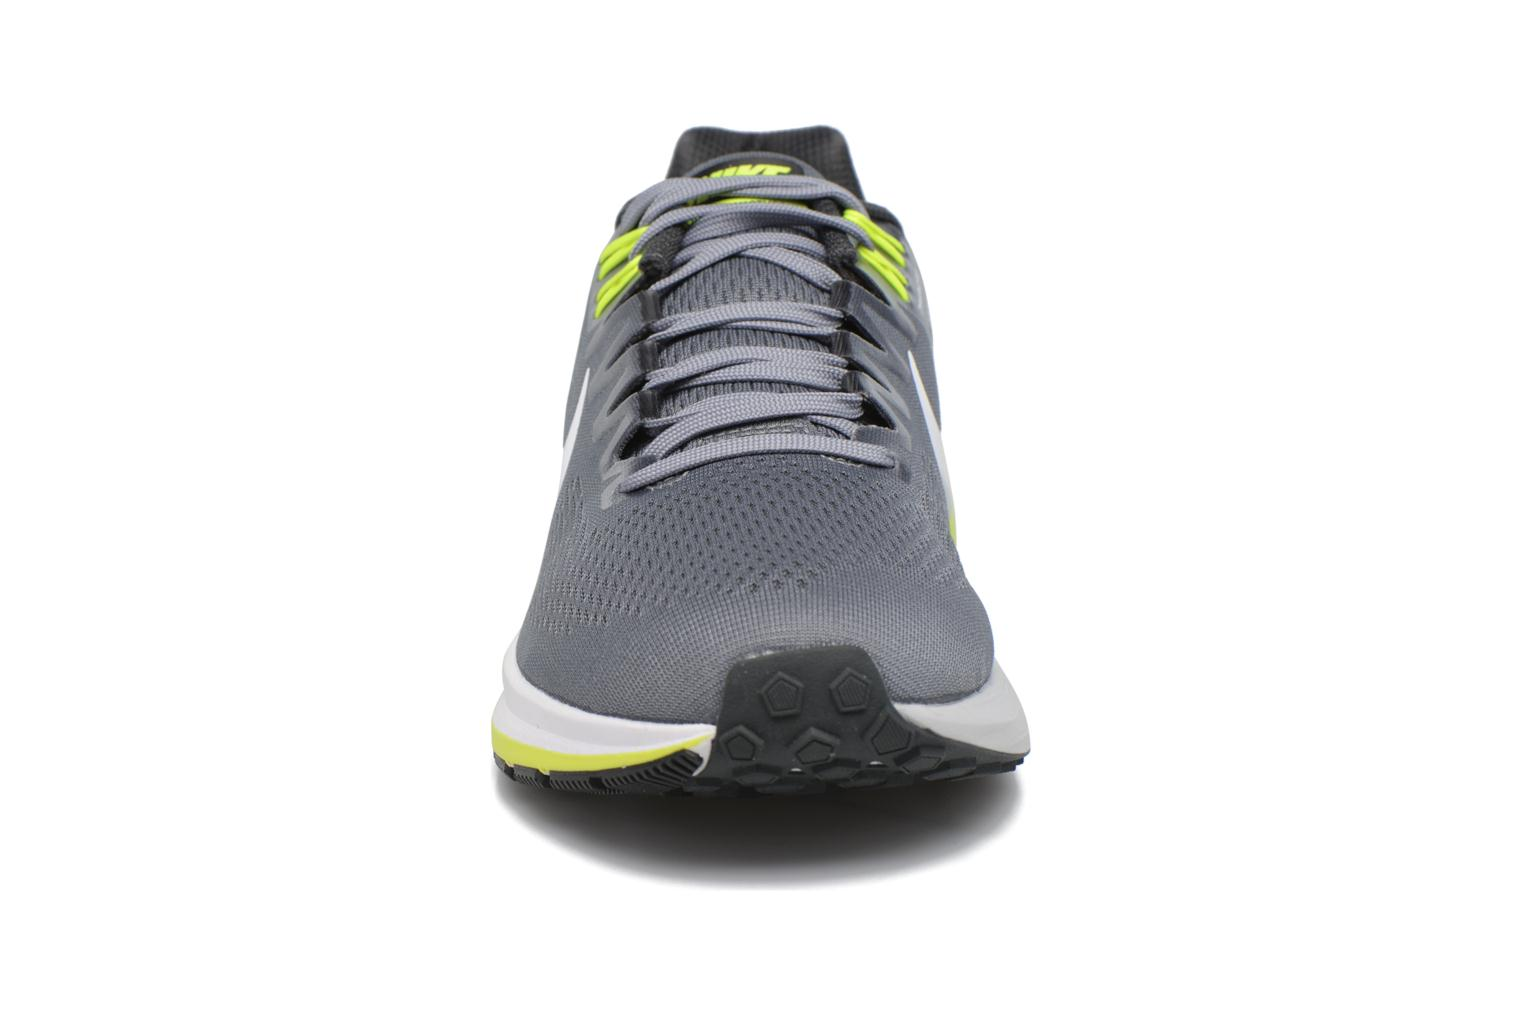 Nike Air Zoom Structure 21 Cool Grey/White-Anthracite-Volt